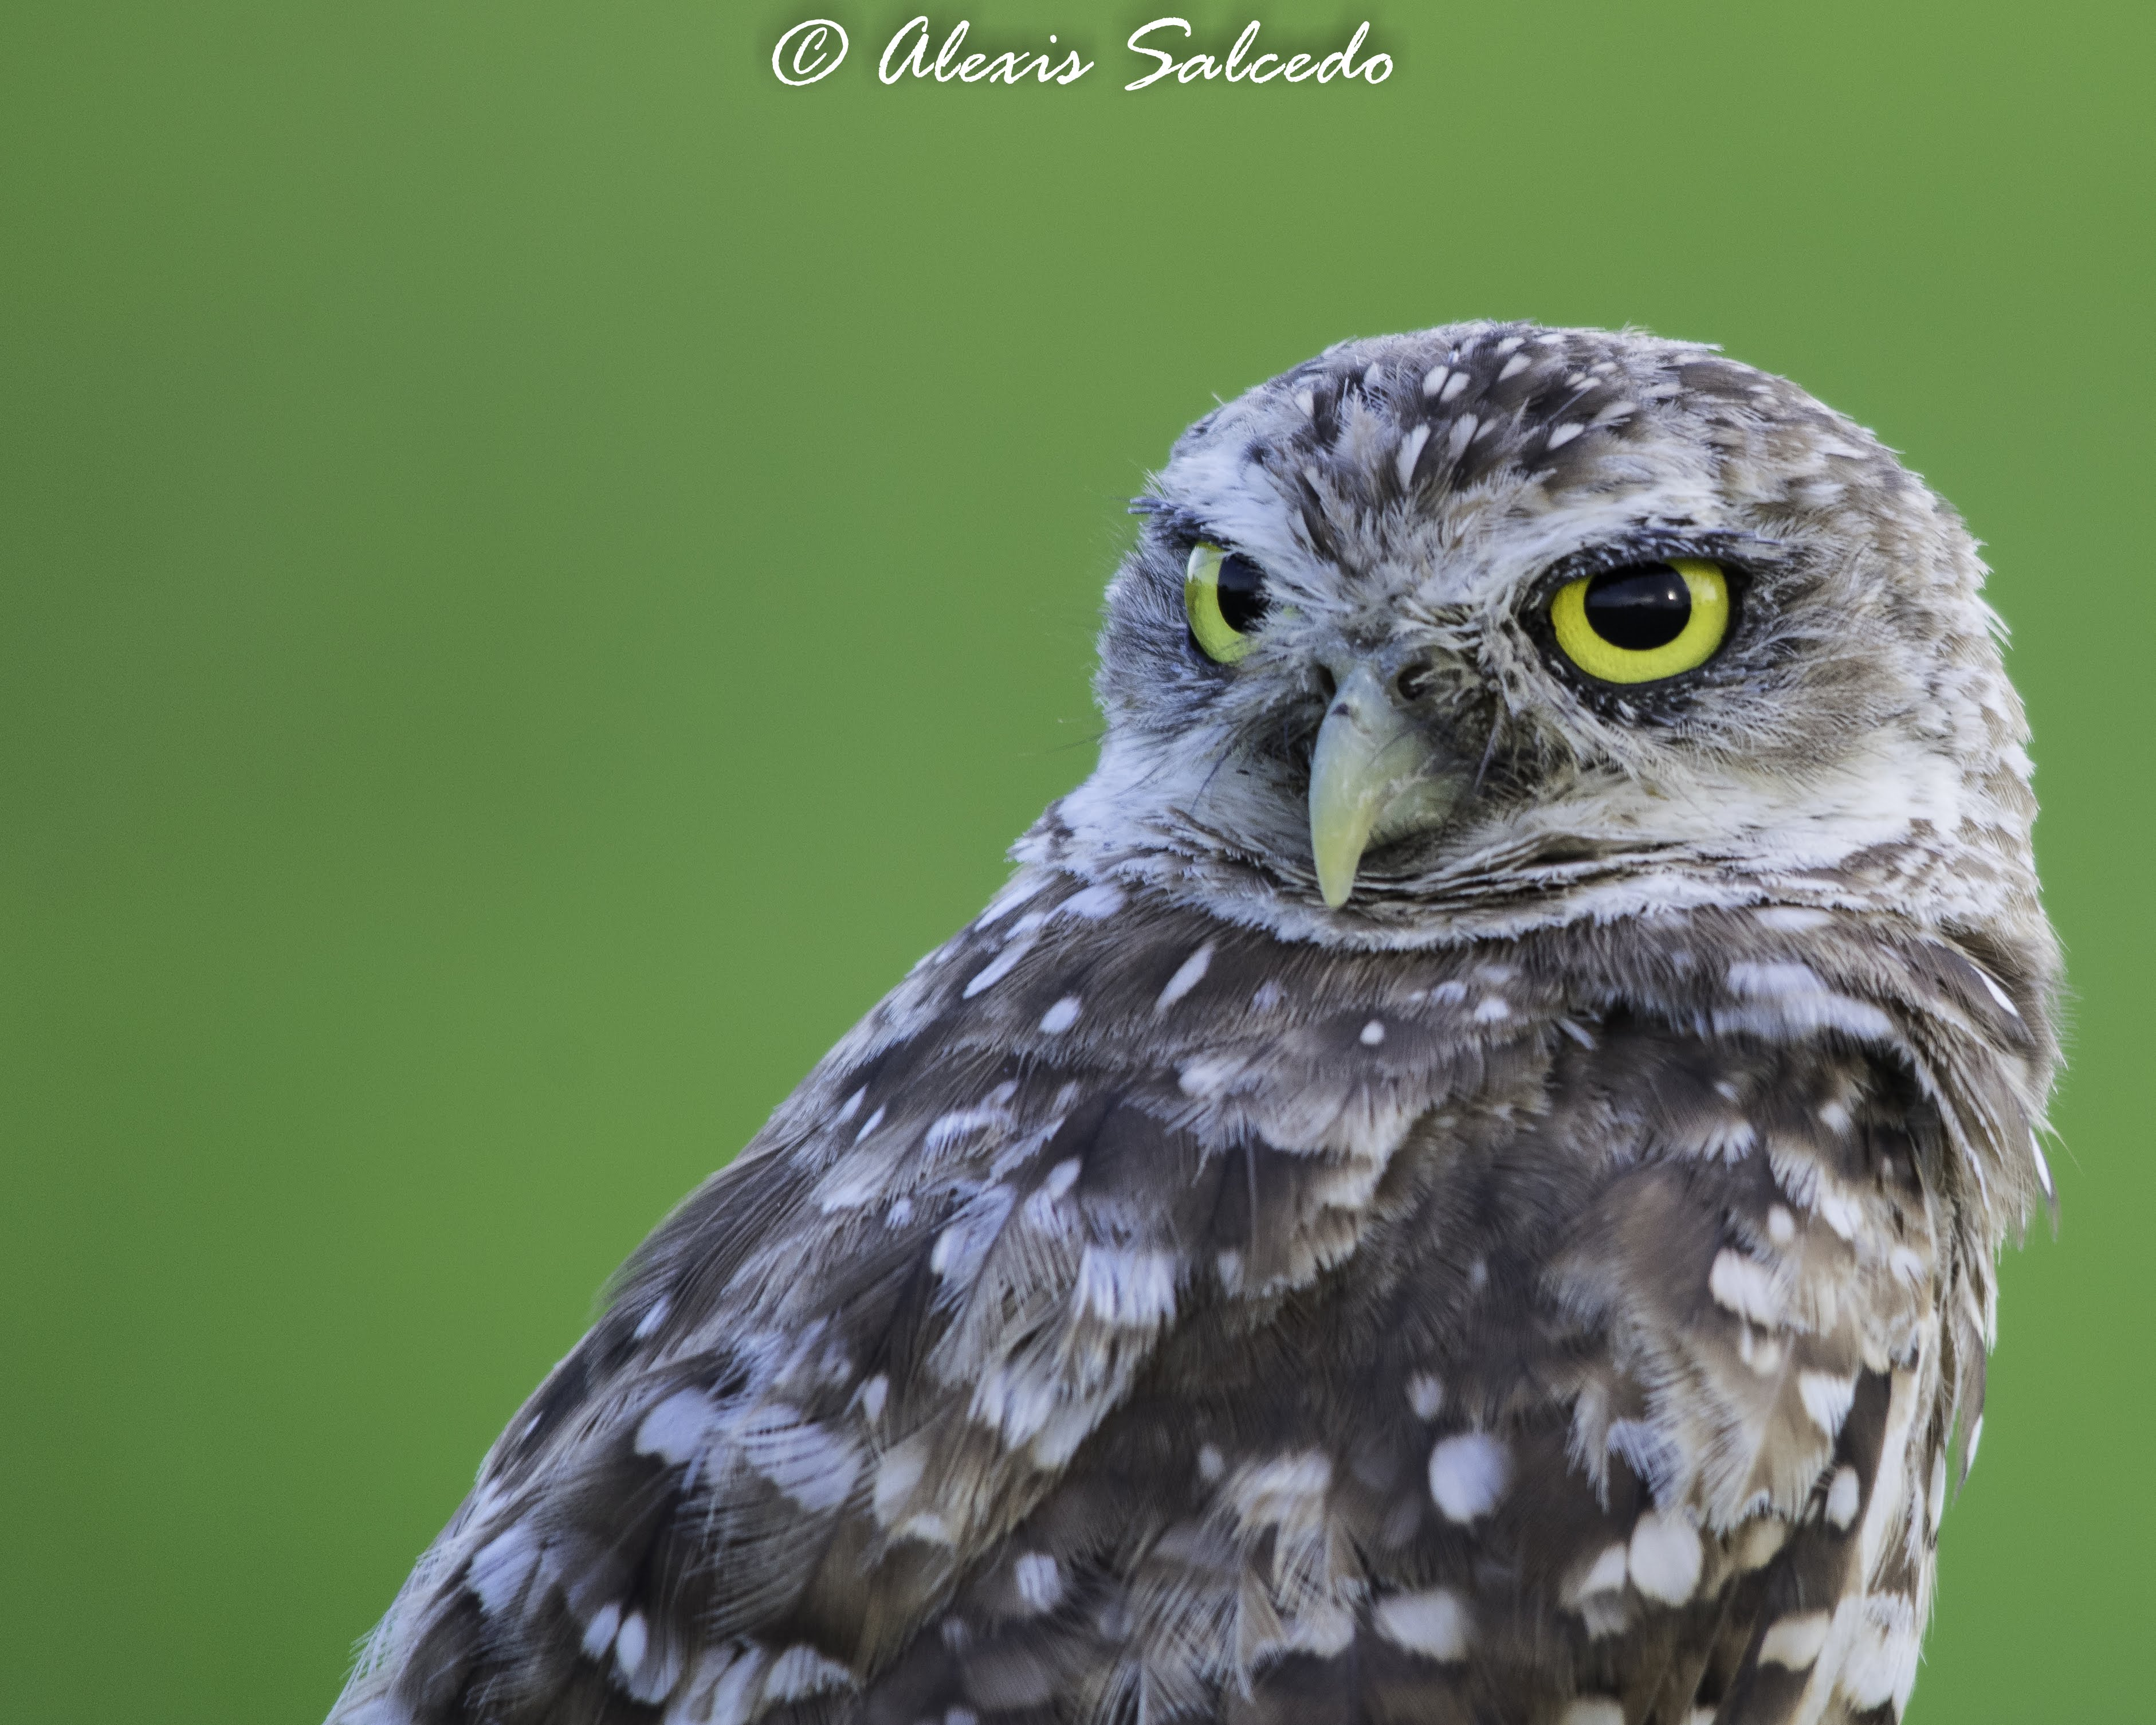 A nice close-up of a Burrowing Owl (Athene cunicularia)